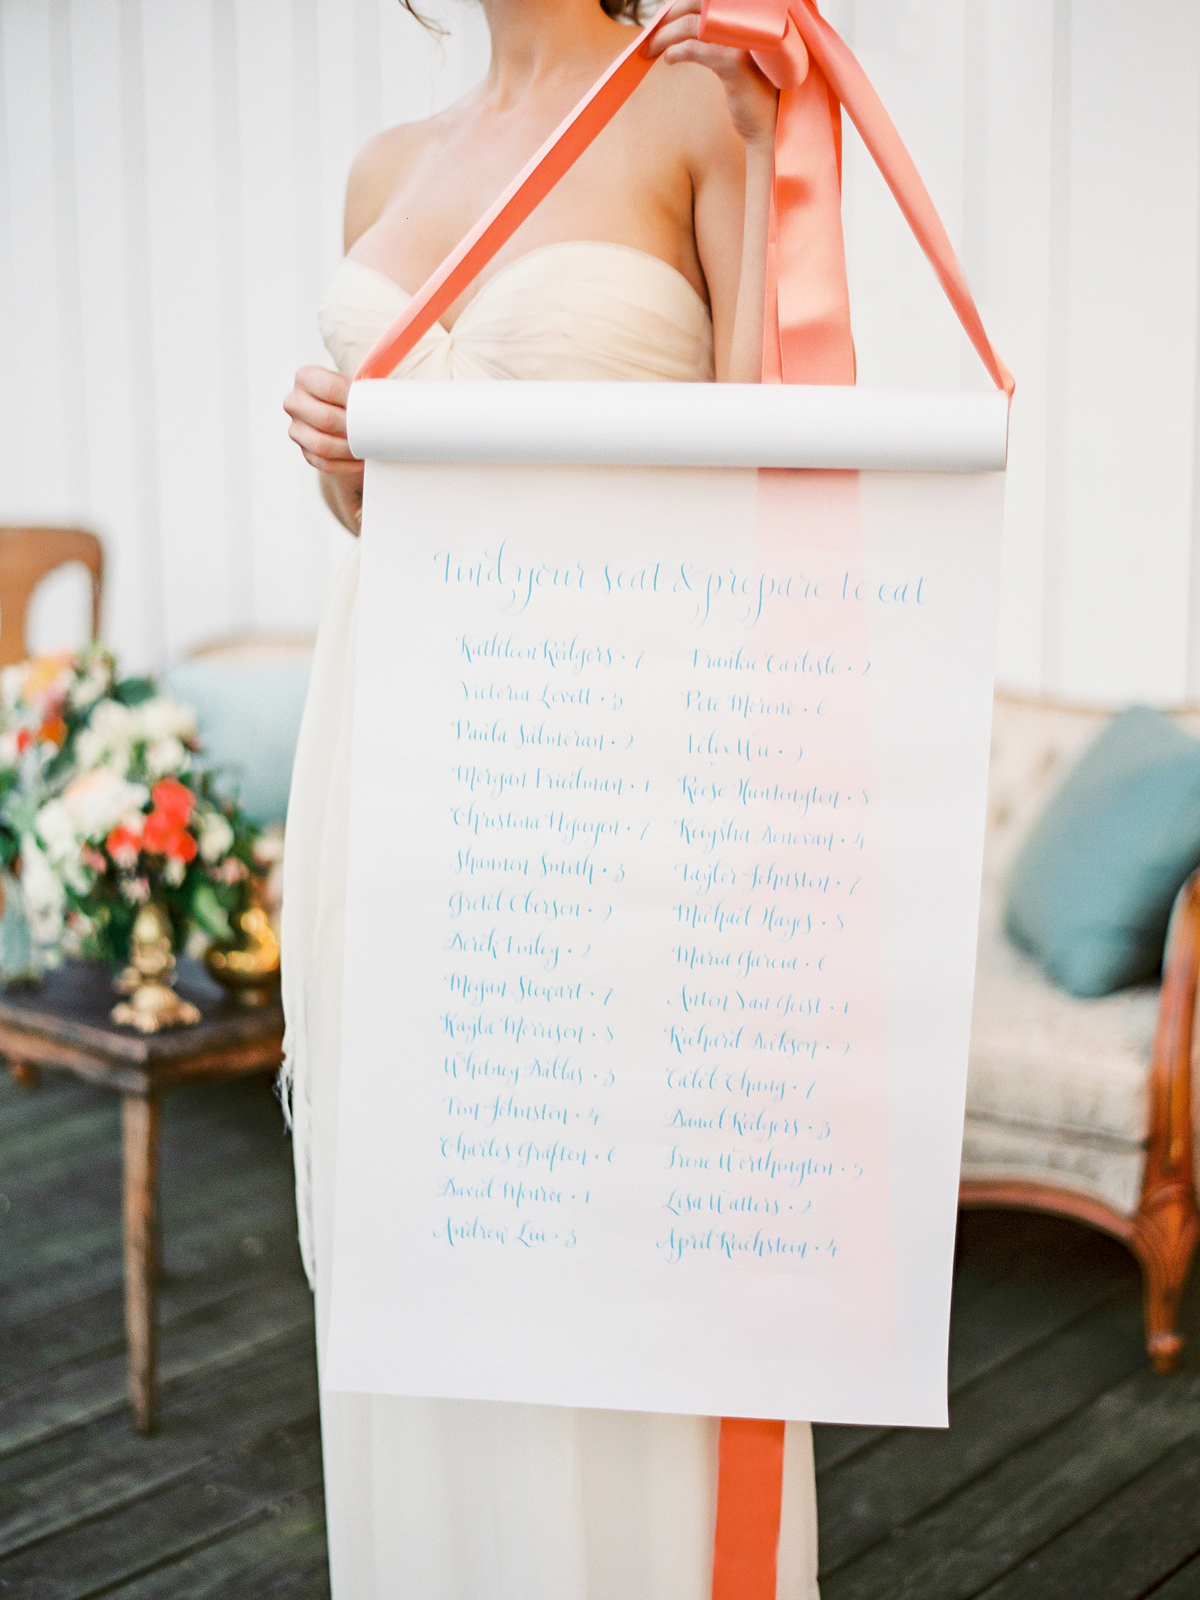 vellum seating chart scroll held by bride